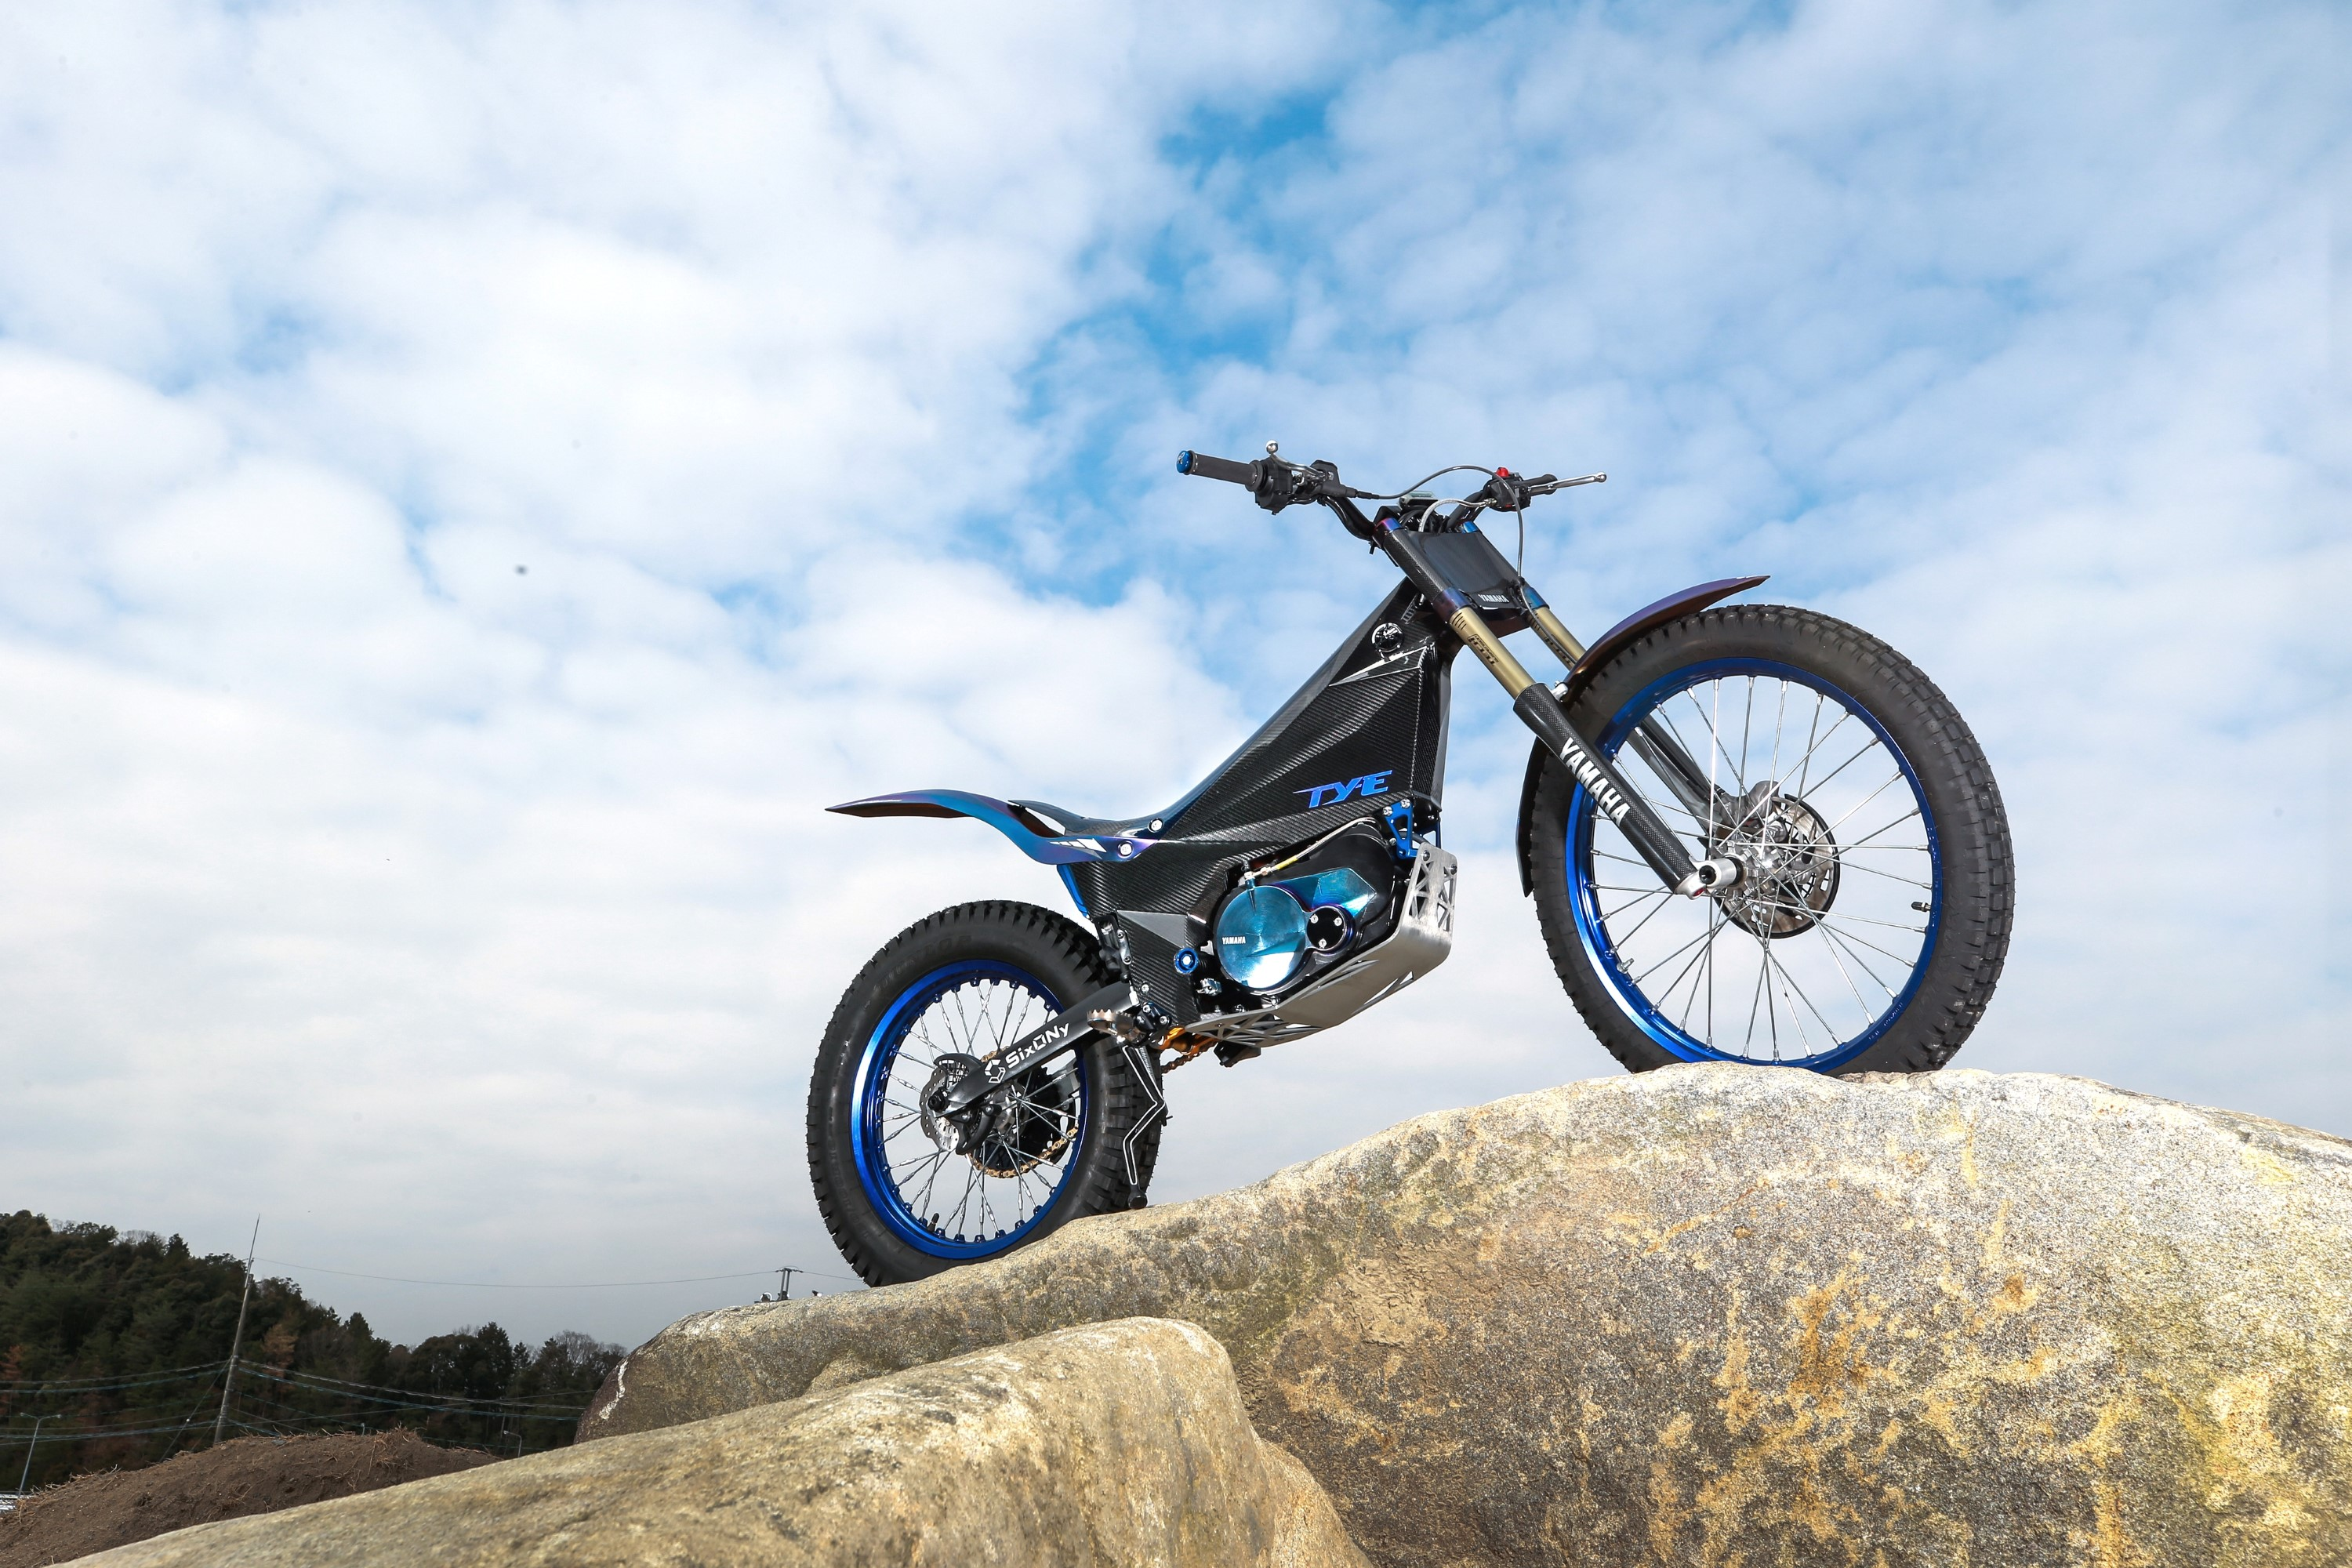 Yamaha Electric Motorcycle >> Yamaha Enters The Electric World With The New TY-E Trial ...